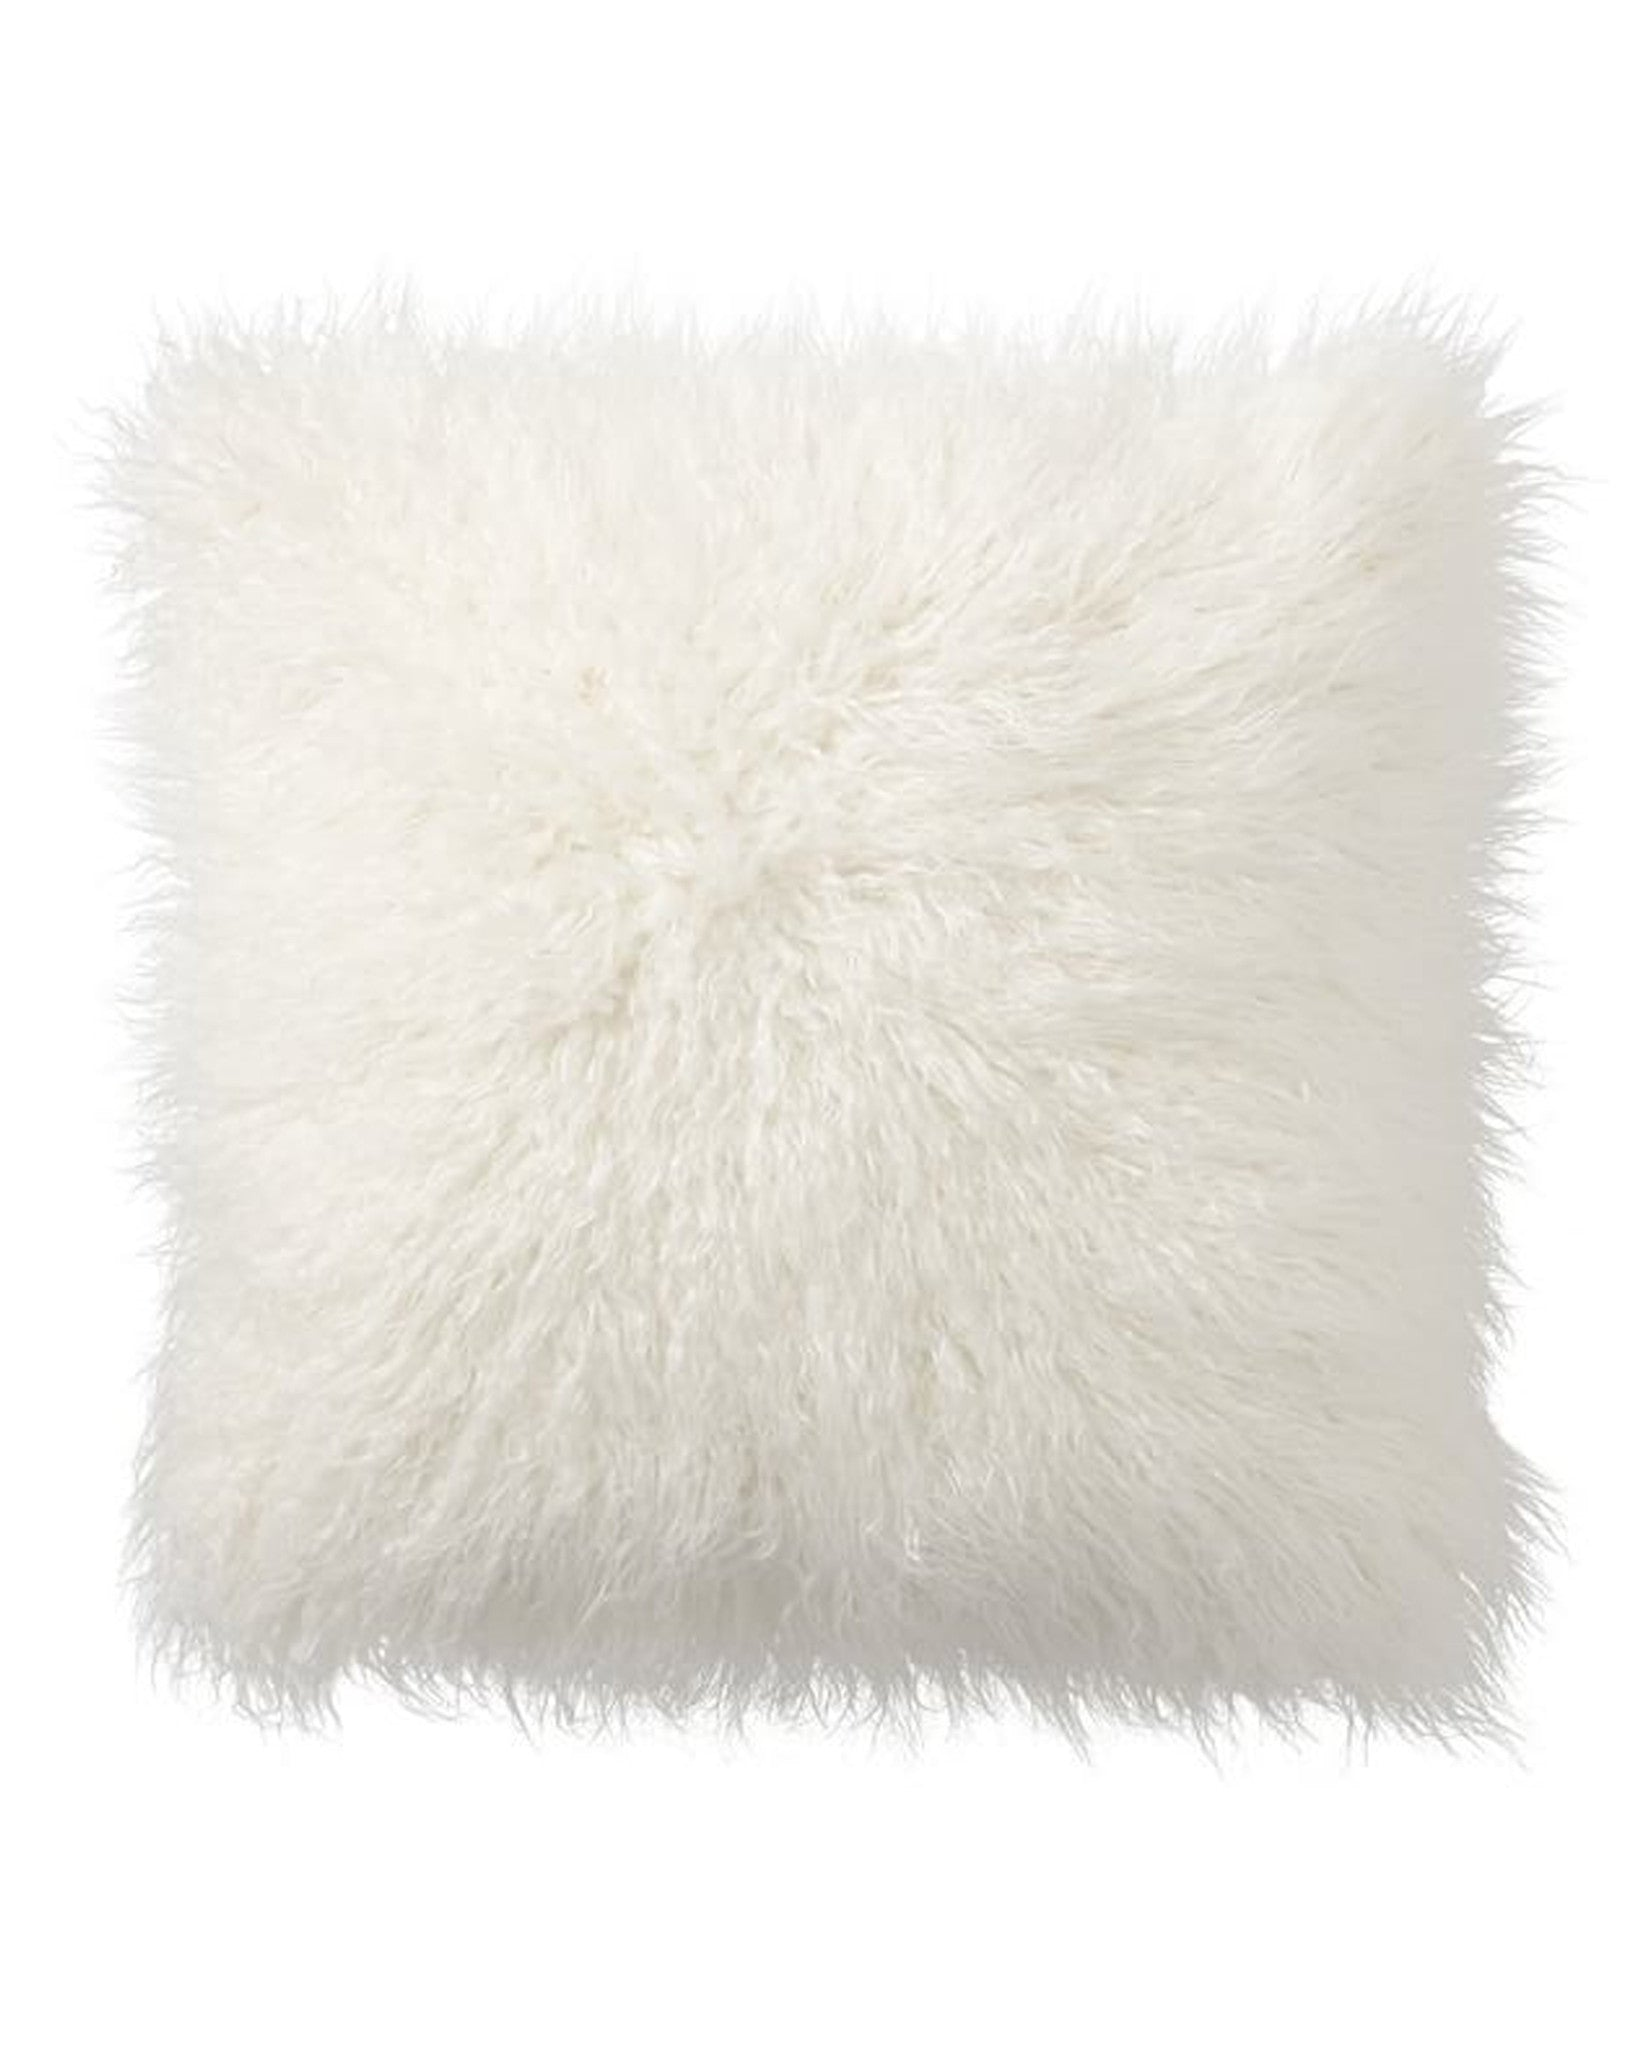 gallery sheep soft ideas lamb cover for wool pillow fur smooth inspiring pillows lambskin white mon z fluffy sheepskin styles mongolian cushion